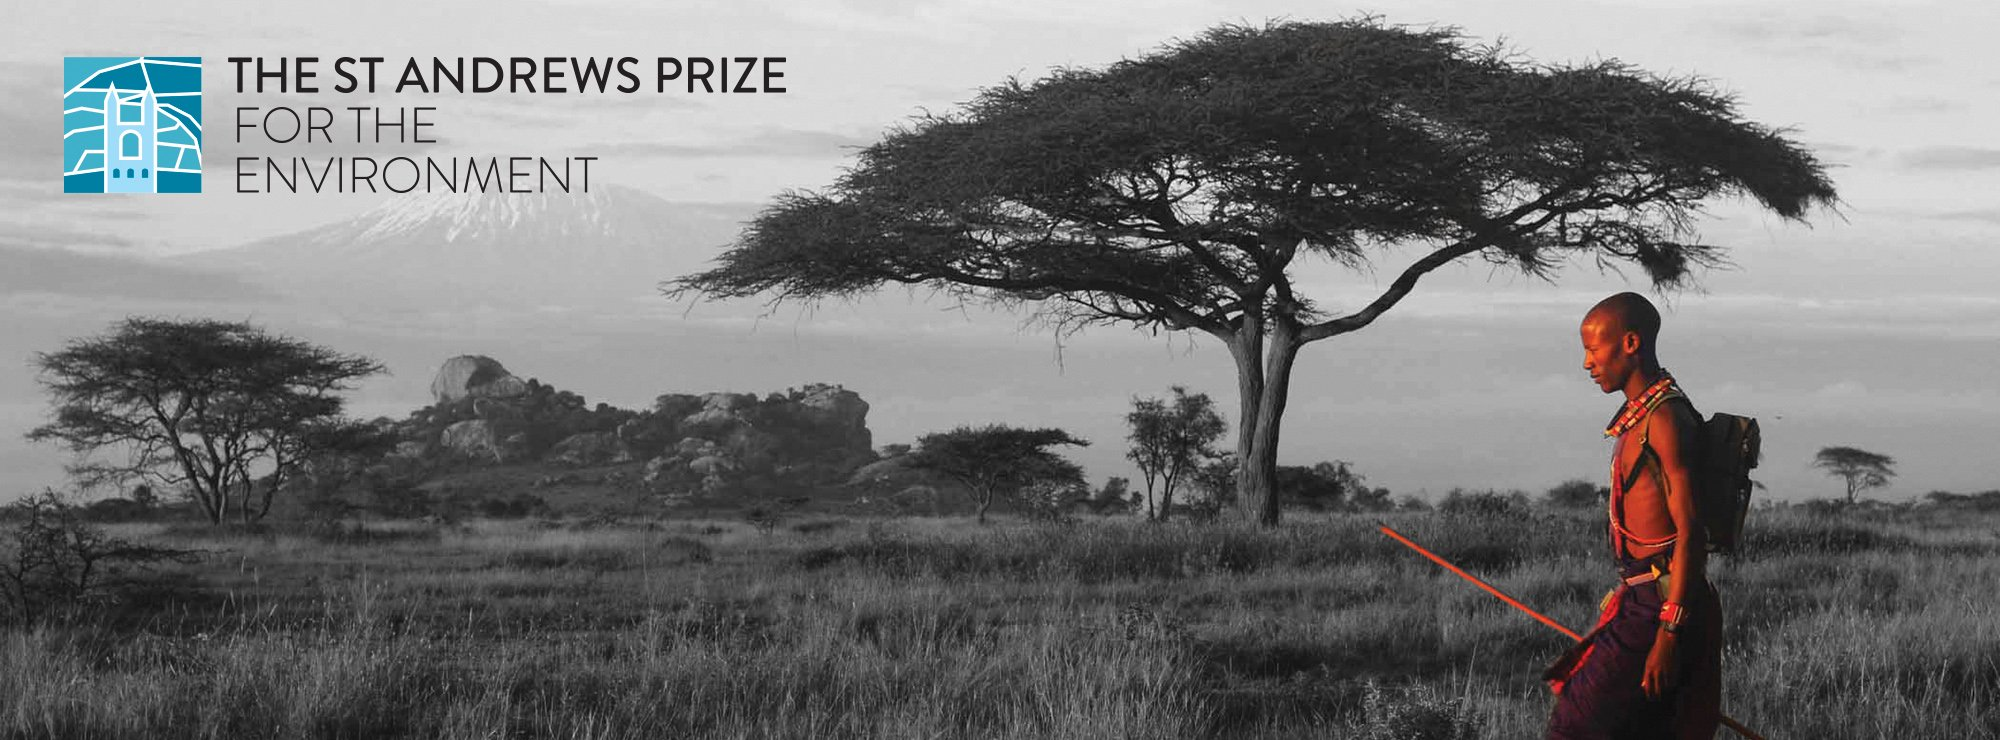 2019 ST ANDREWS PRIZE OPENS FOR ENTRIES